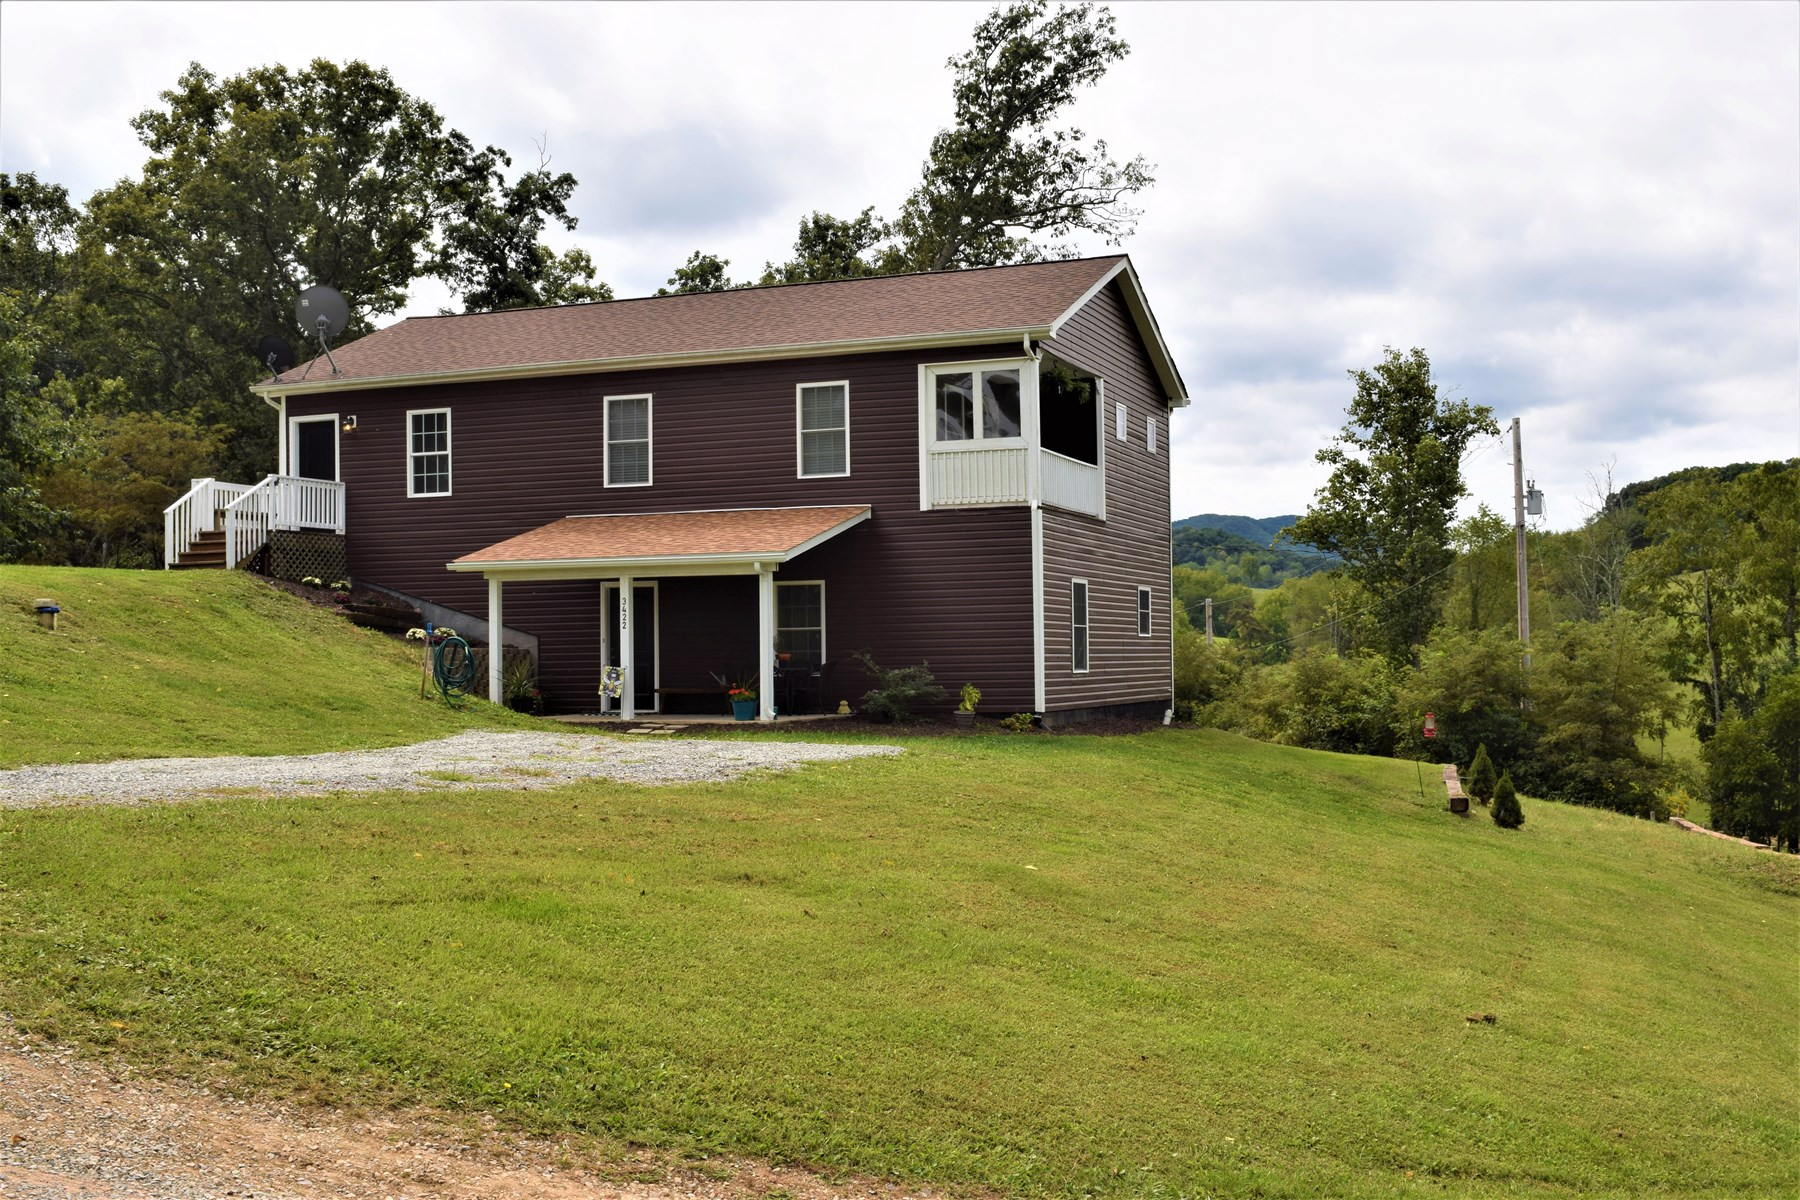 Beautiful Country Home for Sale in Hiwassee VA!